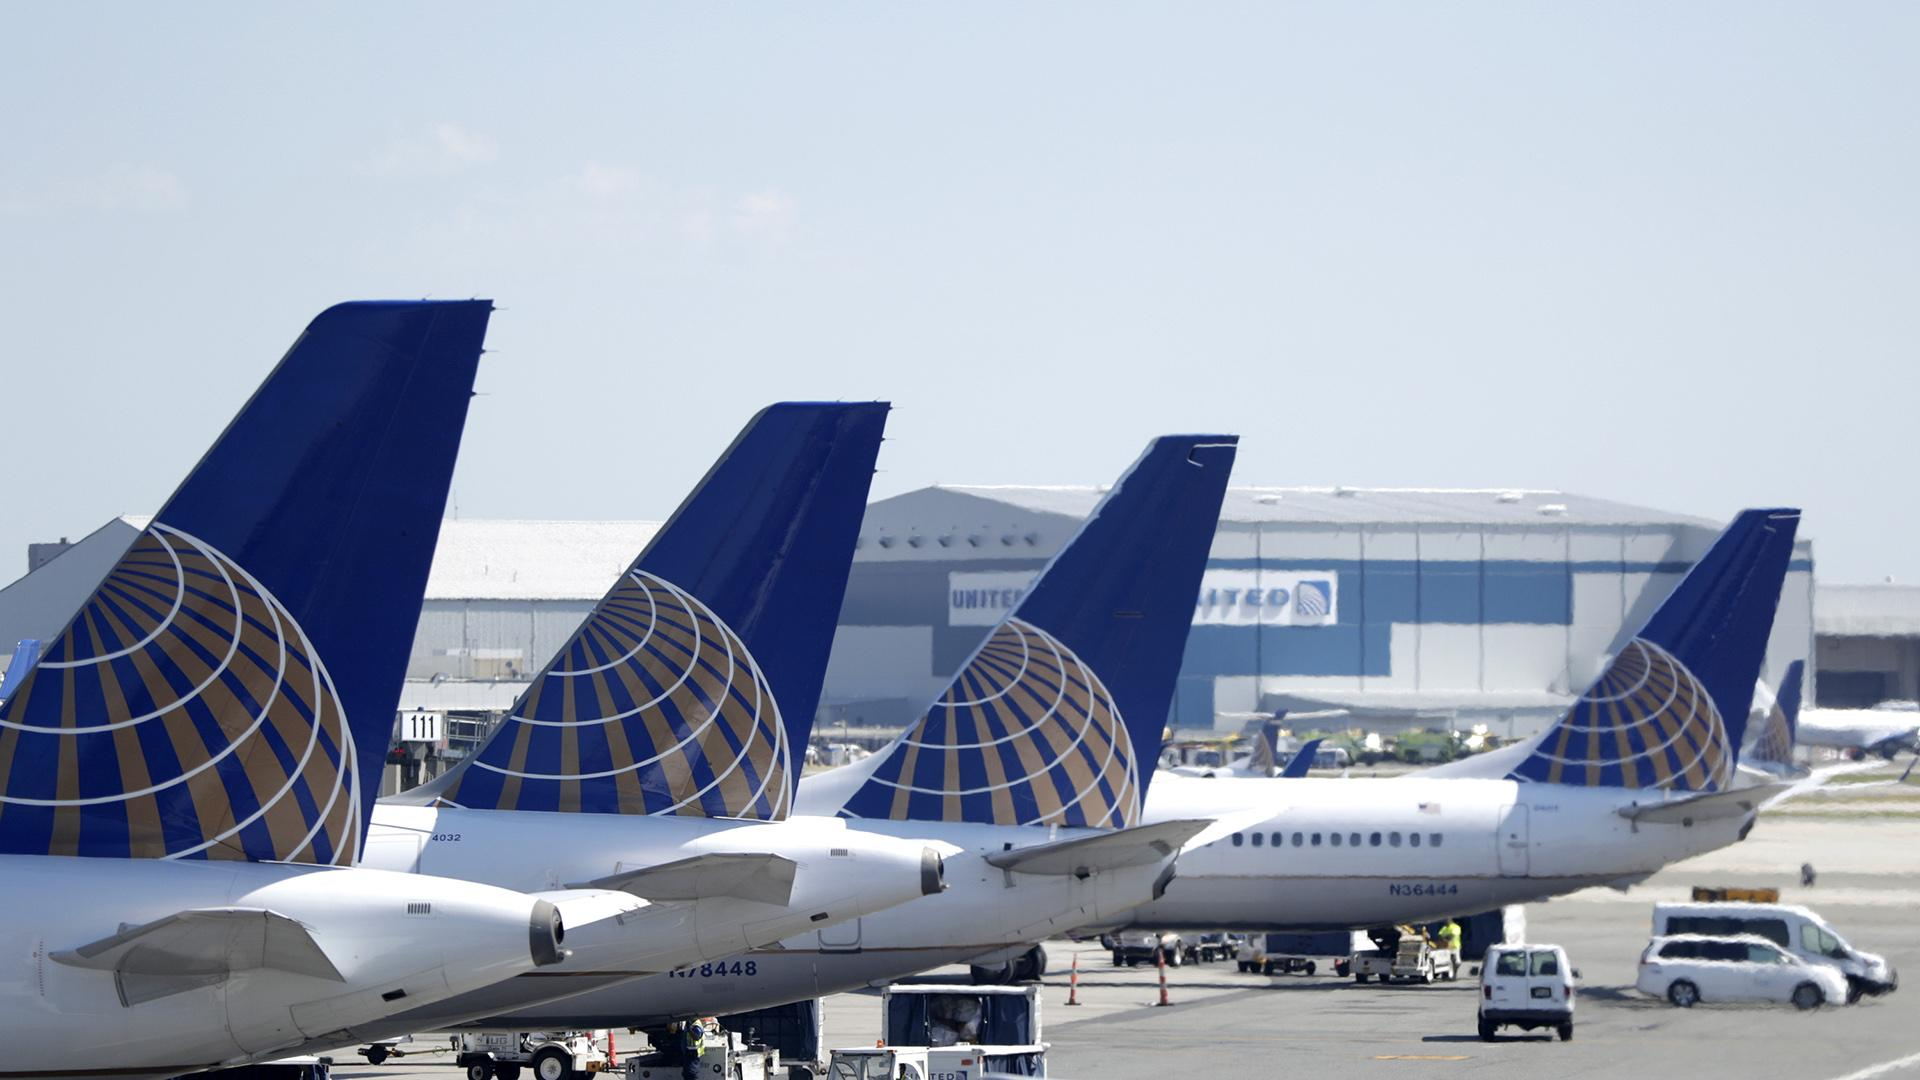 In this July 18, 2018, file photo, United Airlines commercial jets sit at a gate at Terminal C of Newark Liberty International Airport in Newark, N.J. (AP Photo / Julio Cortez, File)